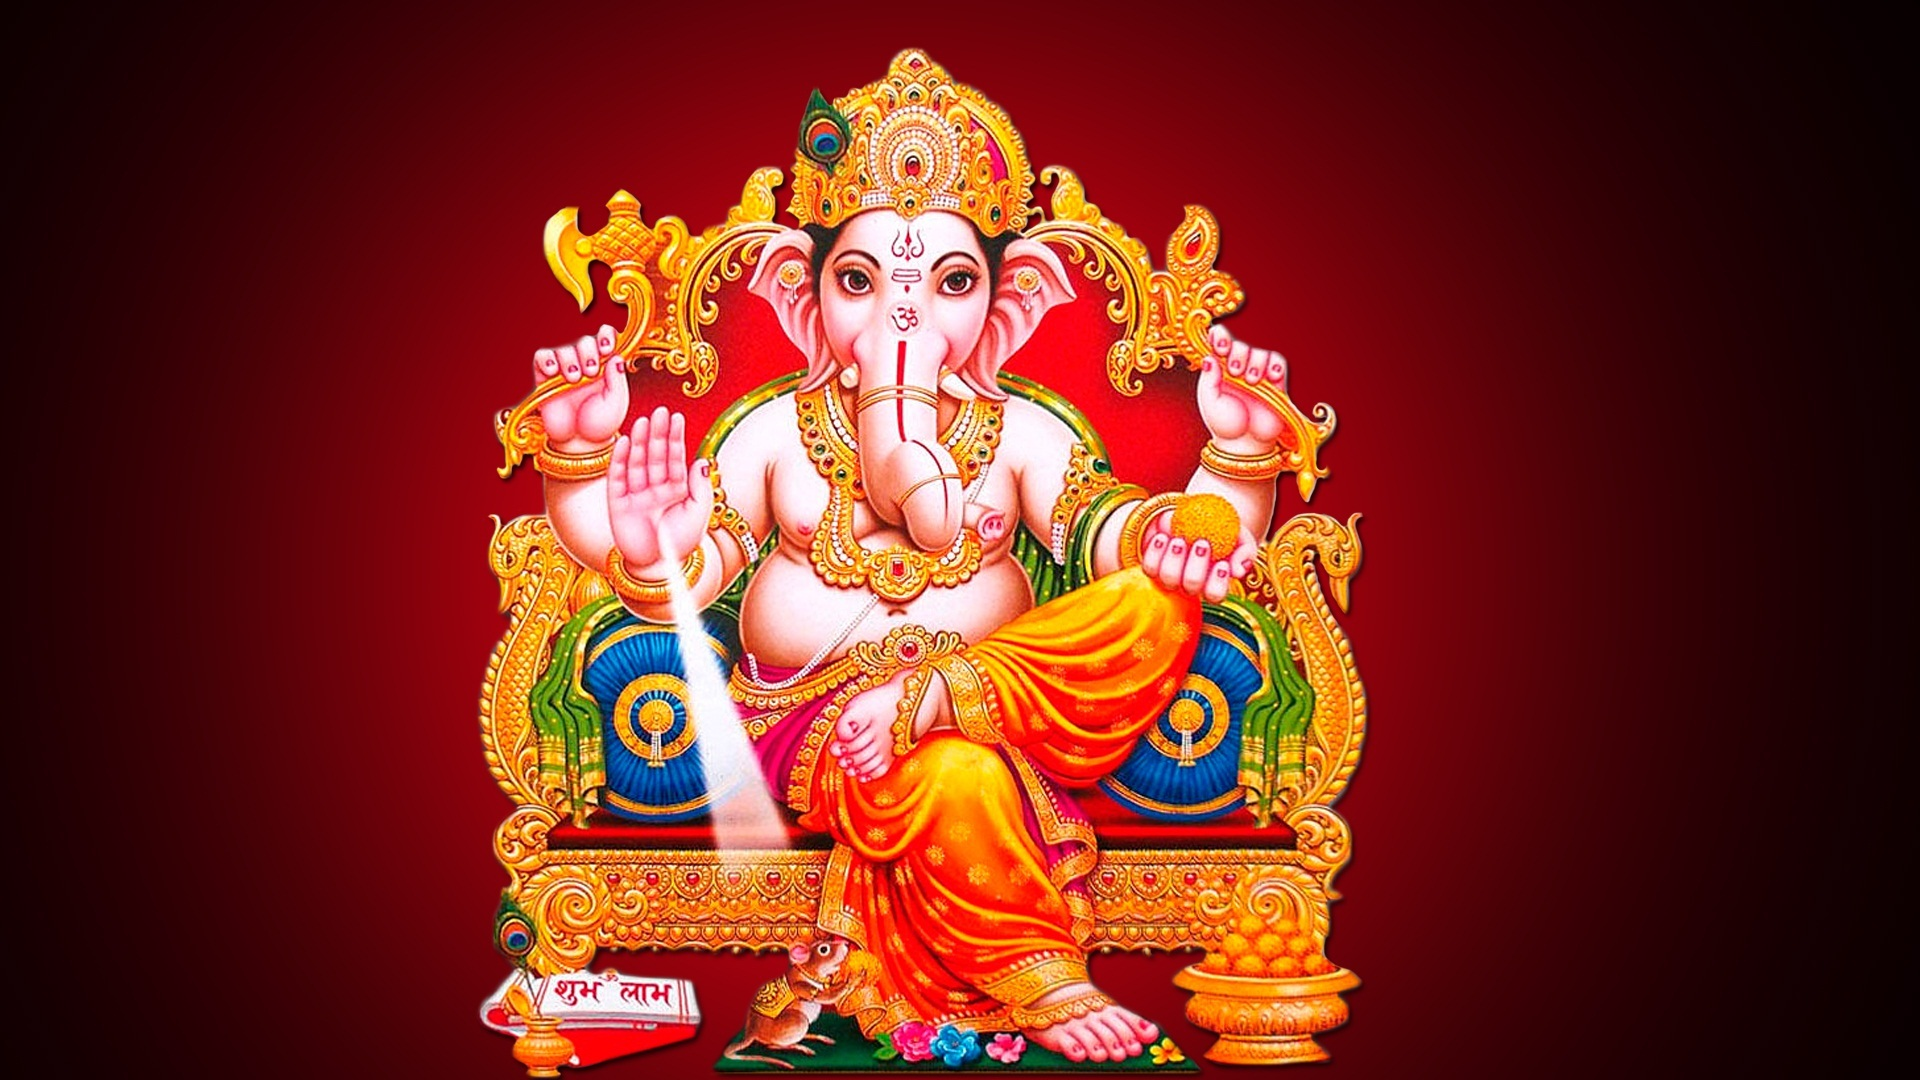 Ganapati wallpapers 2016 star marathi for Wallpaper 2016 home